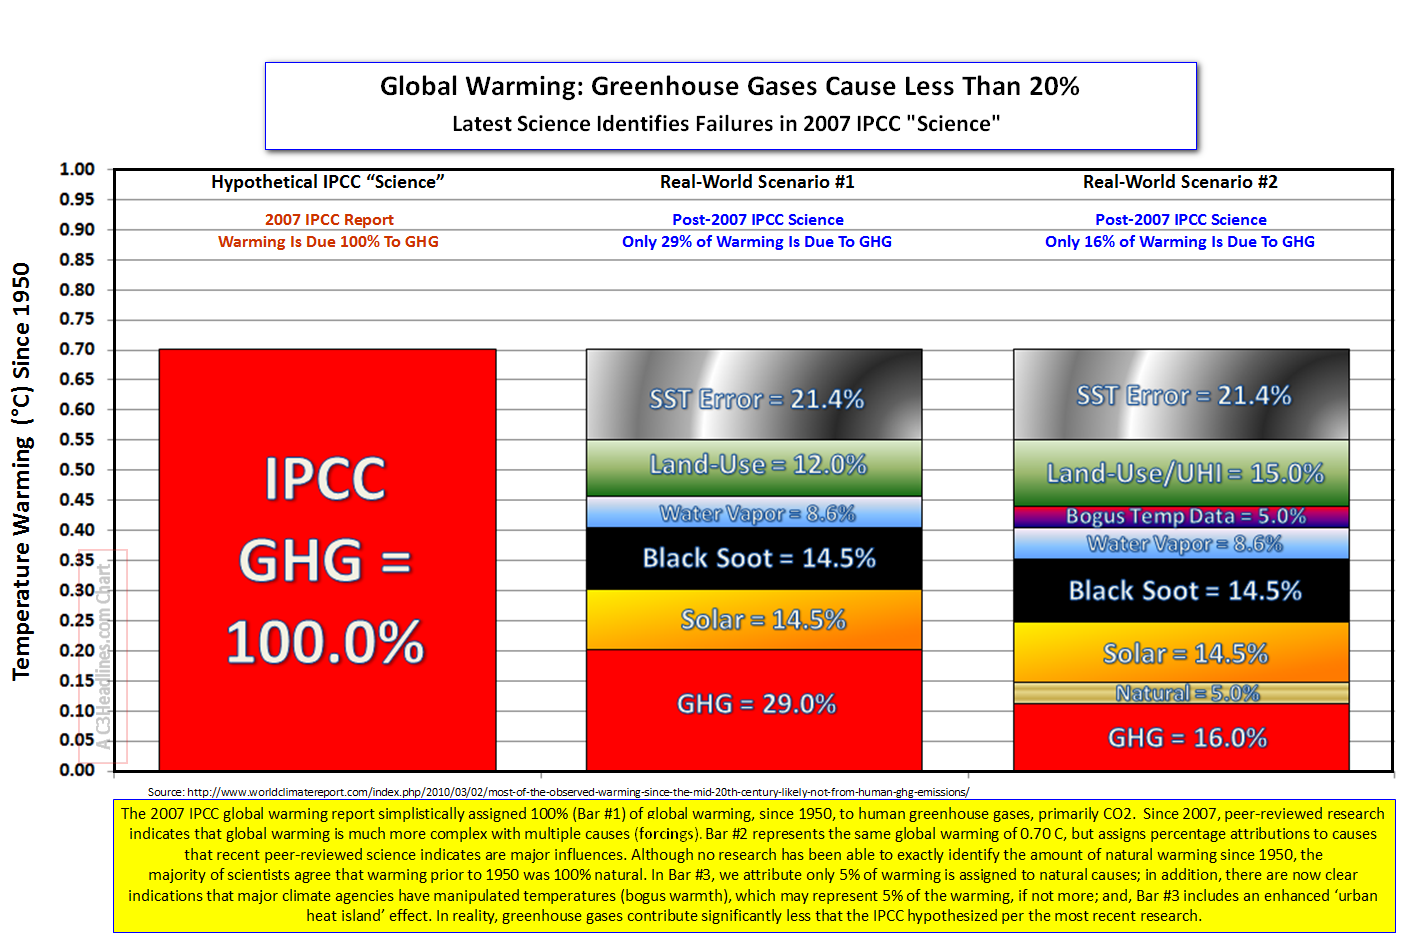 Causes of Globap Warming post-2007